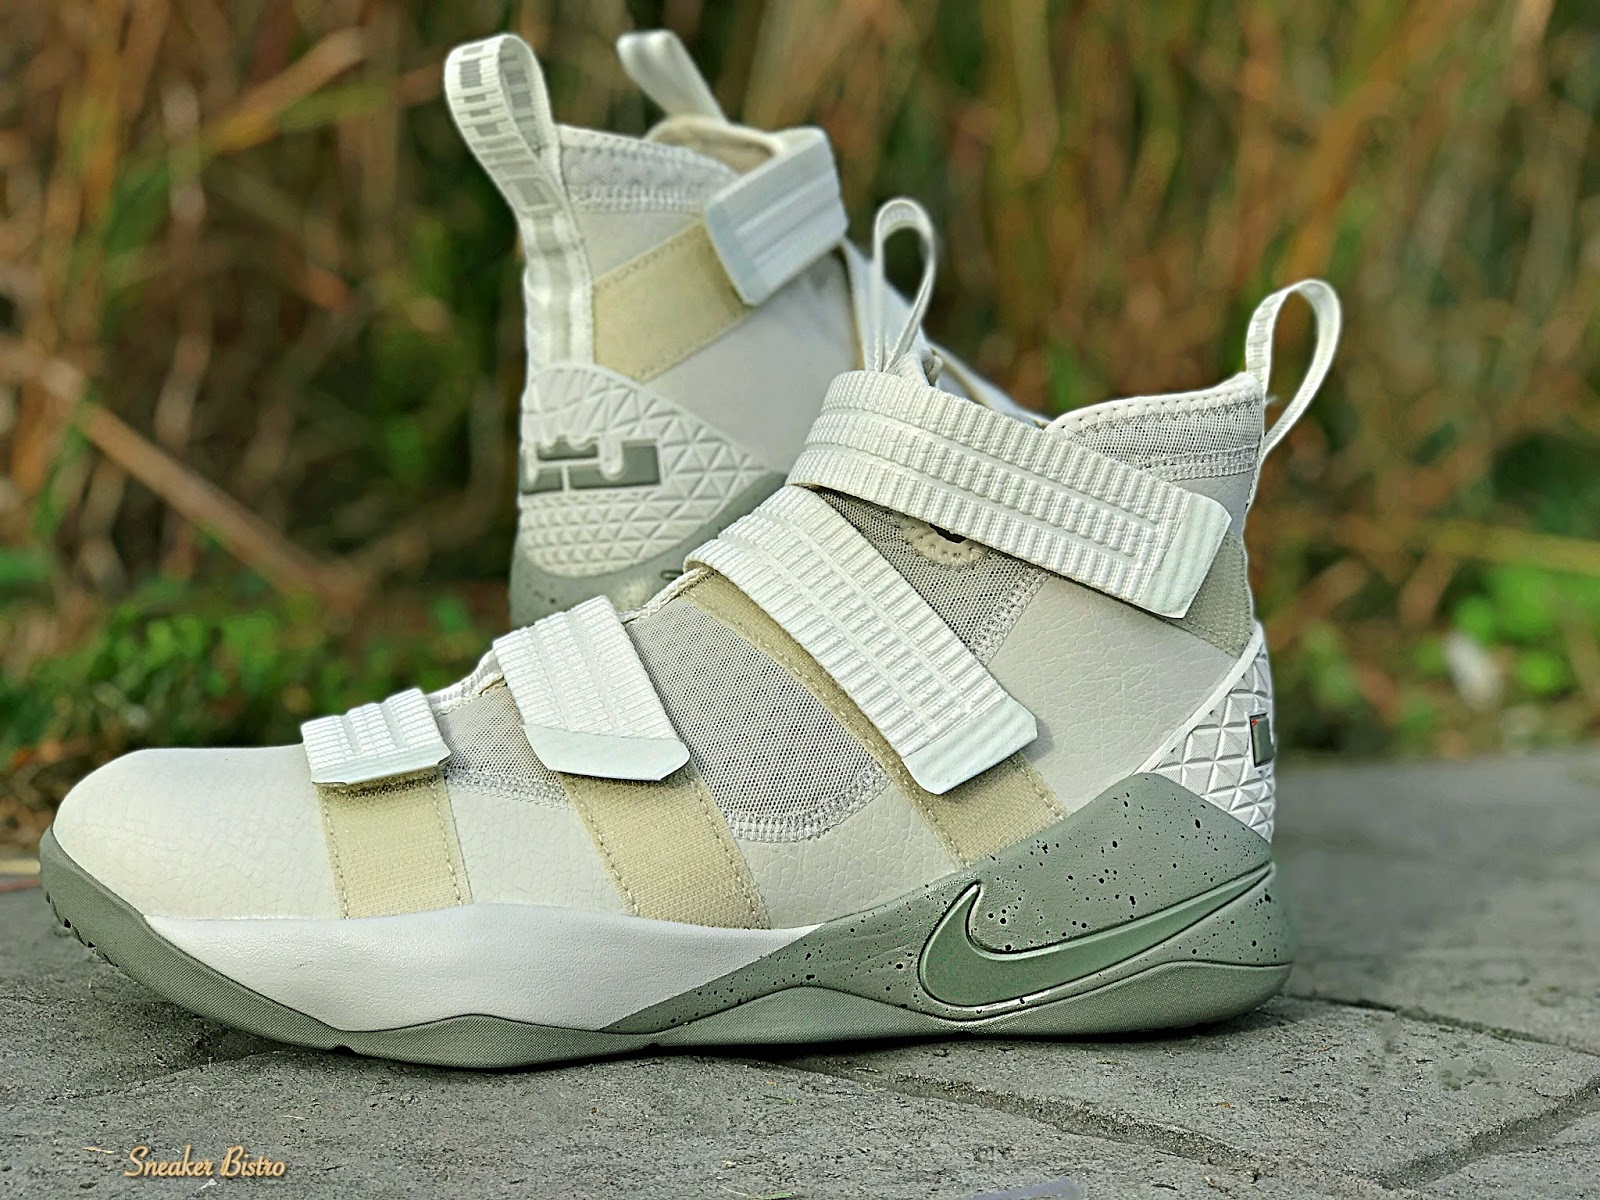 c3f5b66f2bfe Nike LeBron Soldier 11 SFG Light Bone Dark Stucco-Black. Release Info